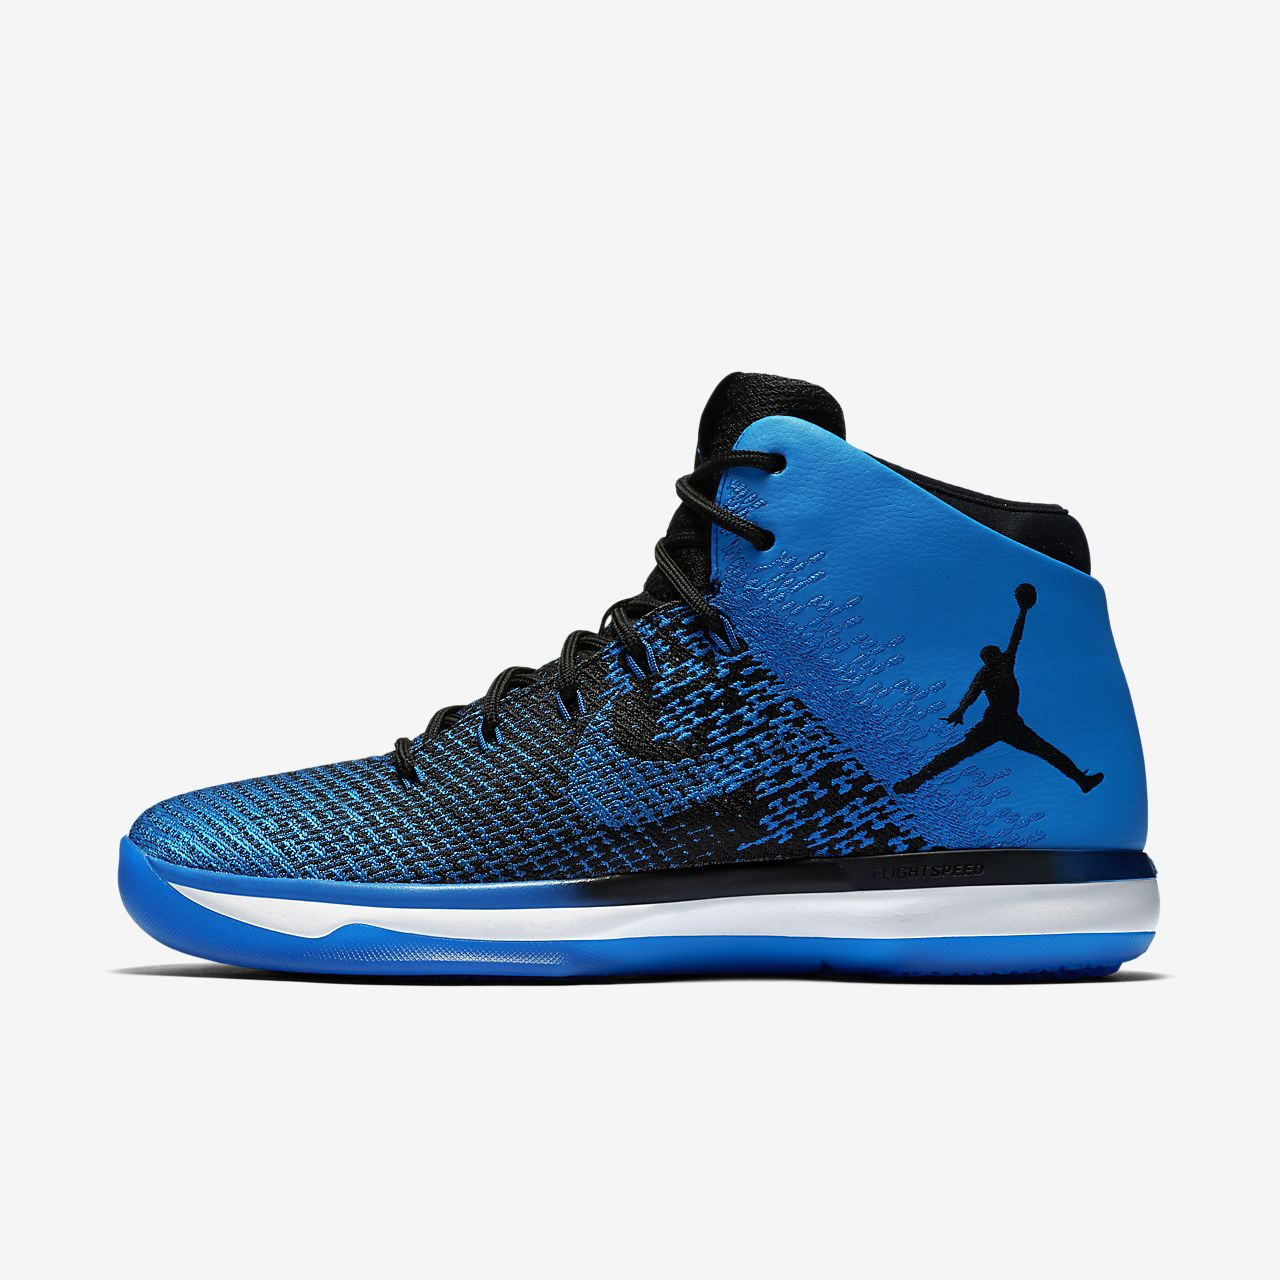 super popular b821d f2fd8 nike air jordan xxxi Looking Ihf2